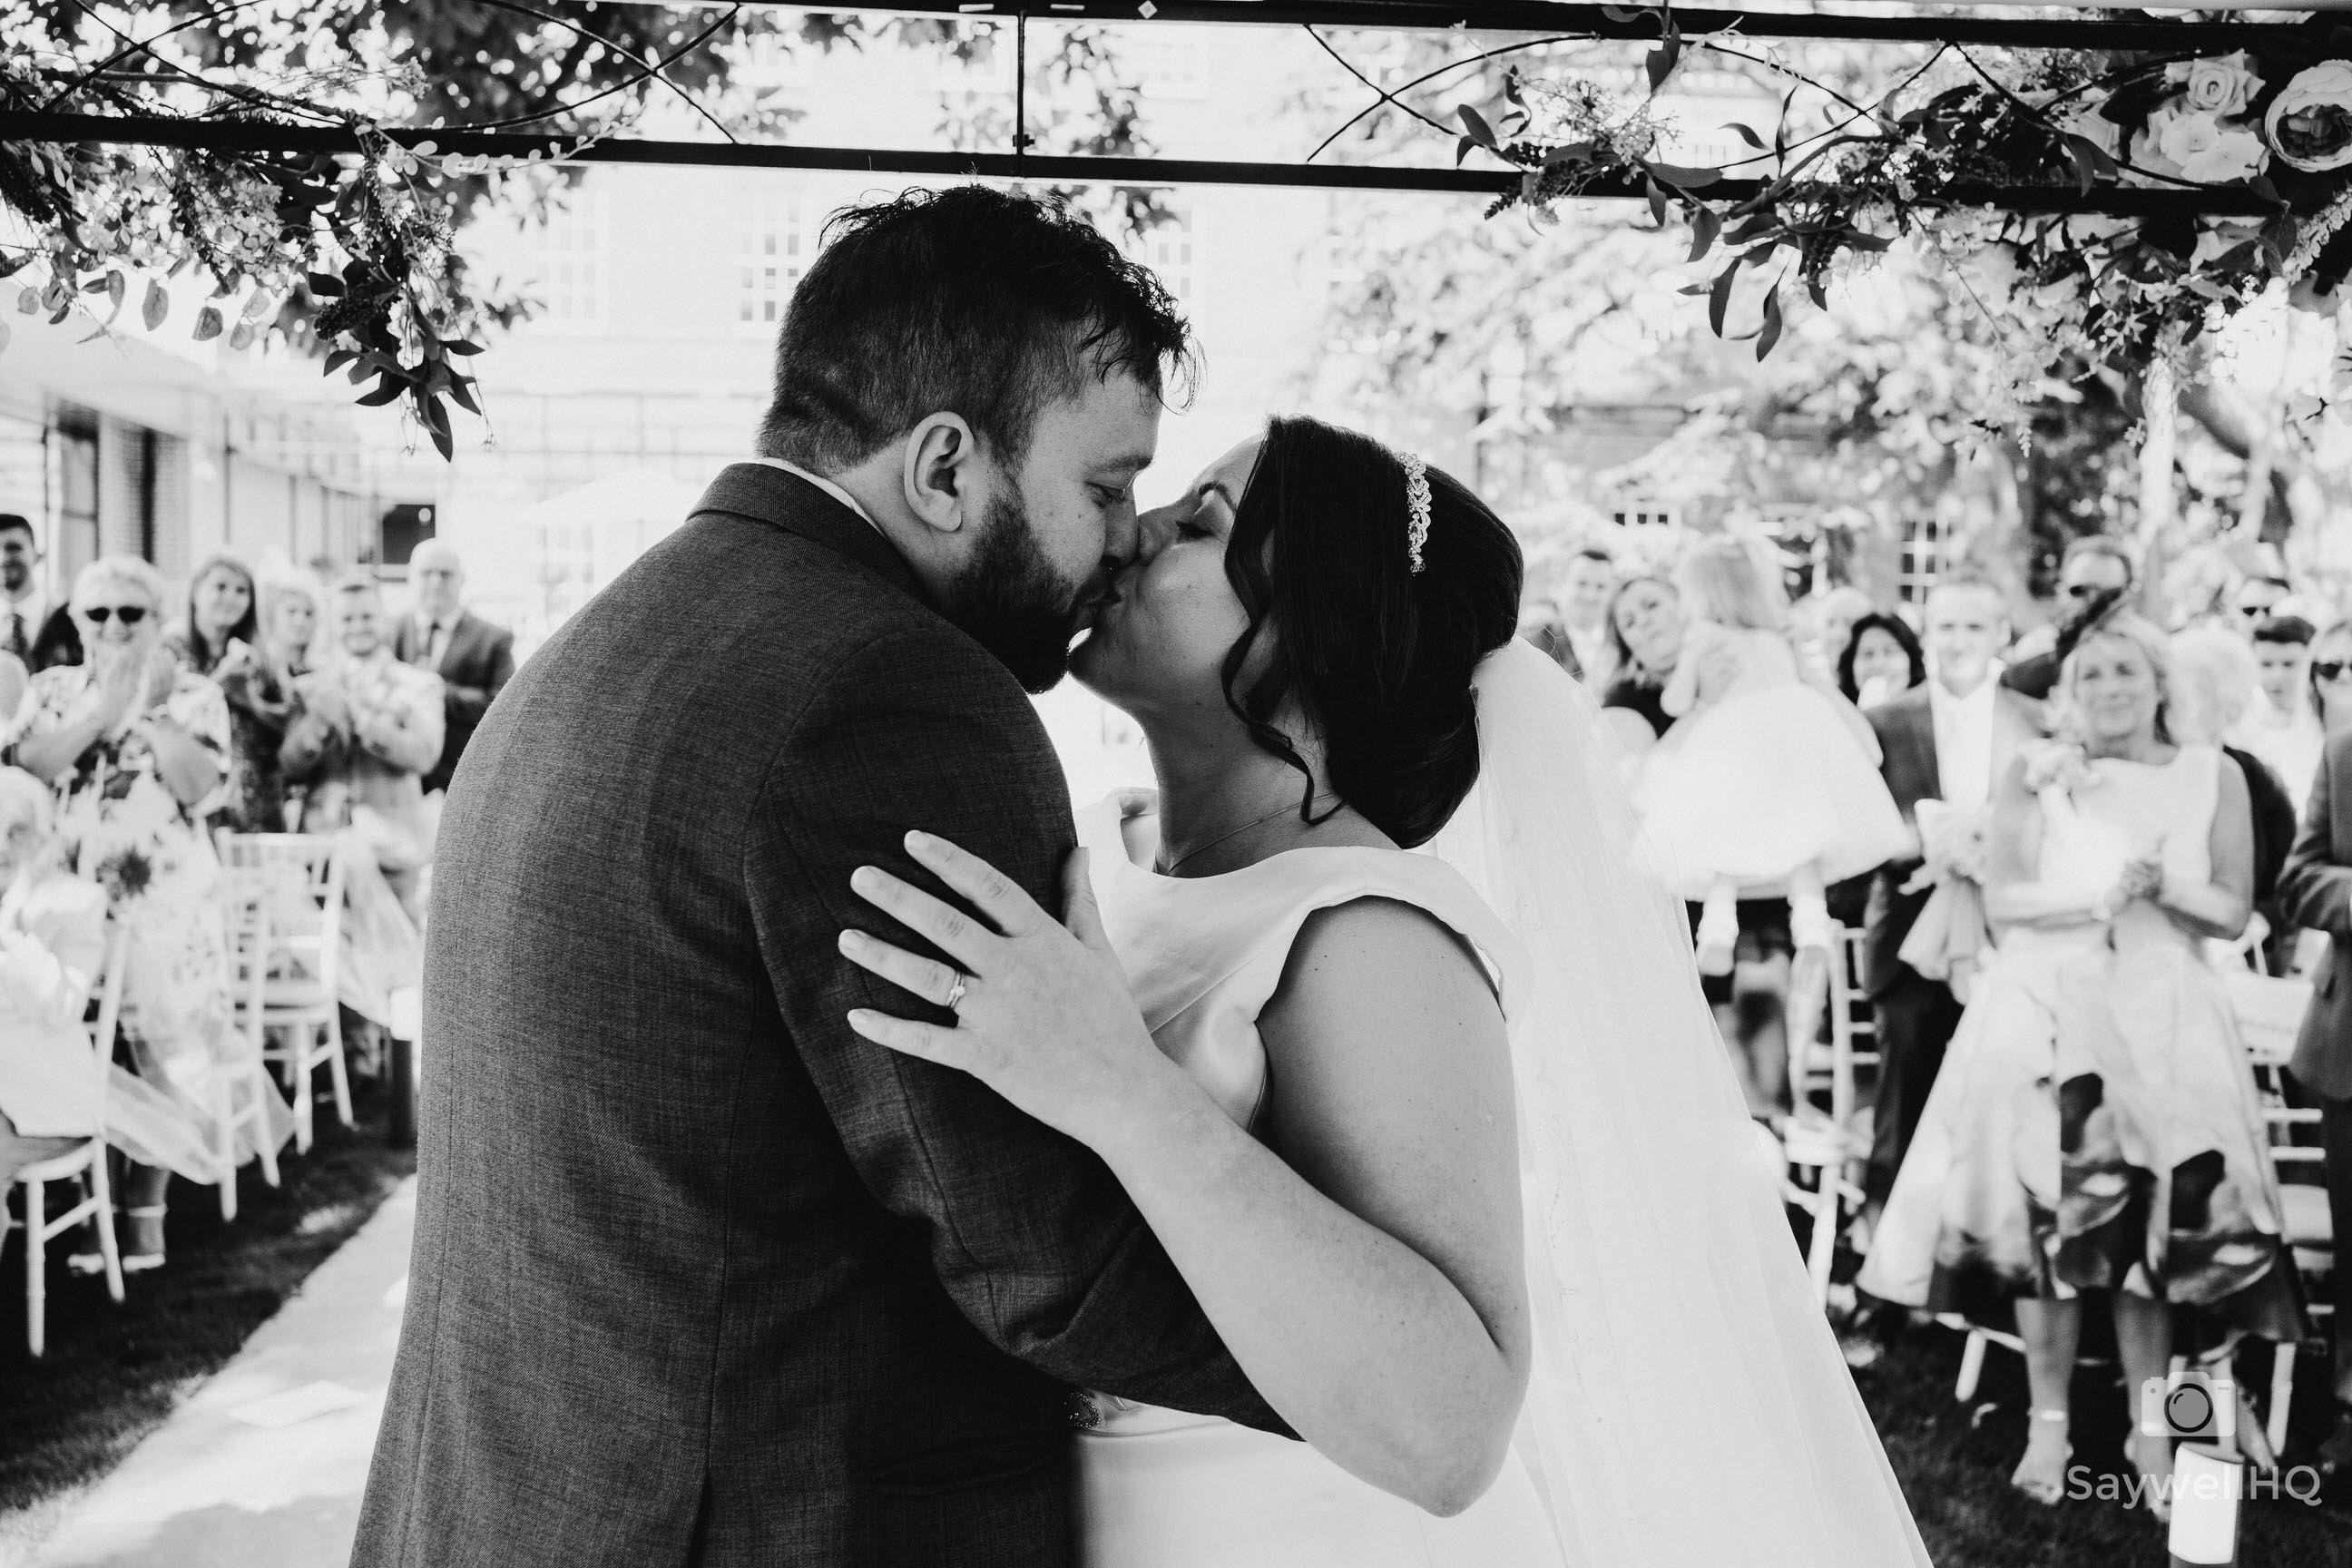 Leicester Wedding Photography at Winstanley House - bride and groom first kiss in outdoor wedding ceremony